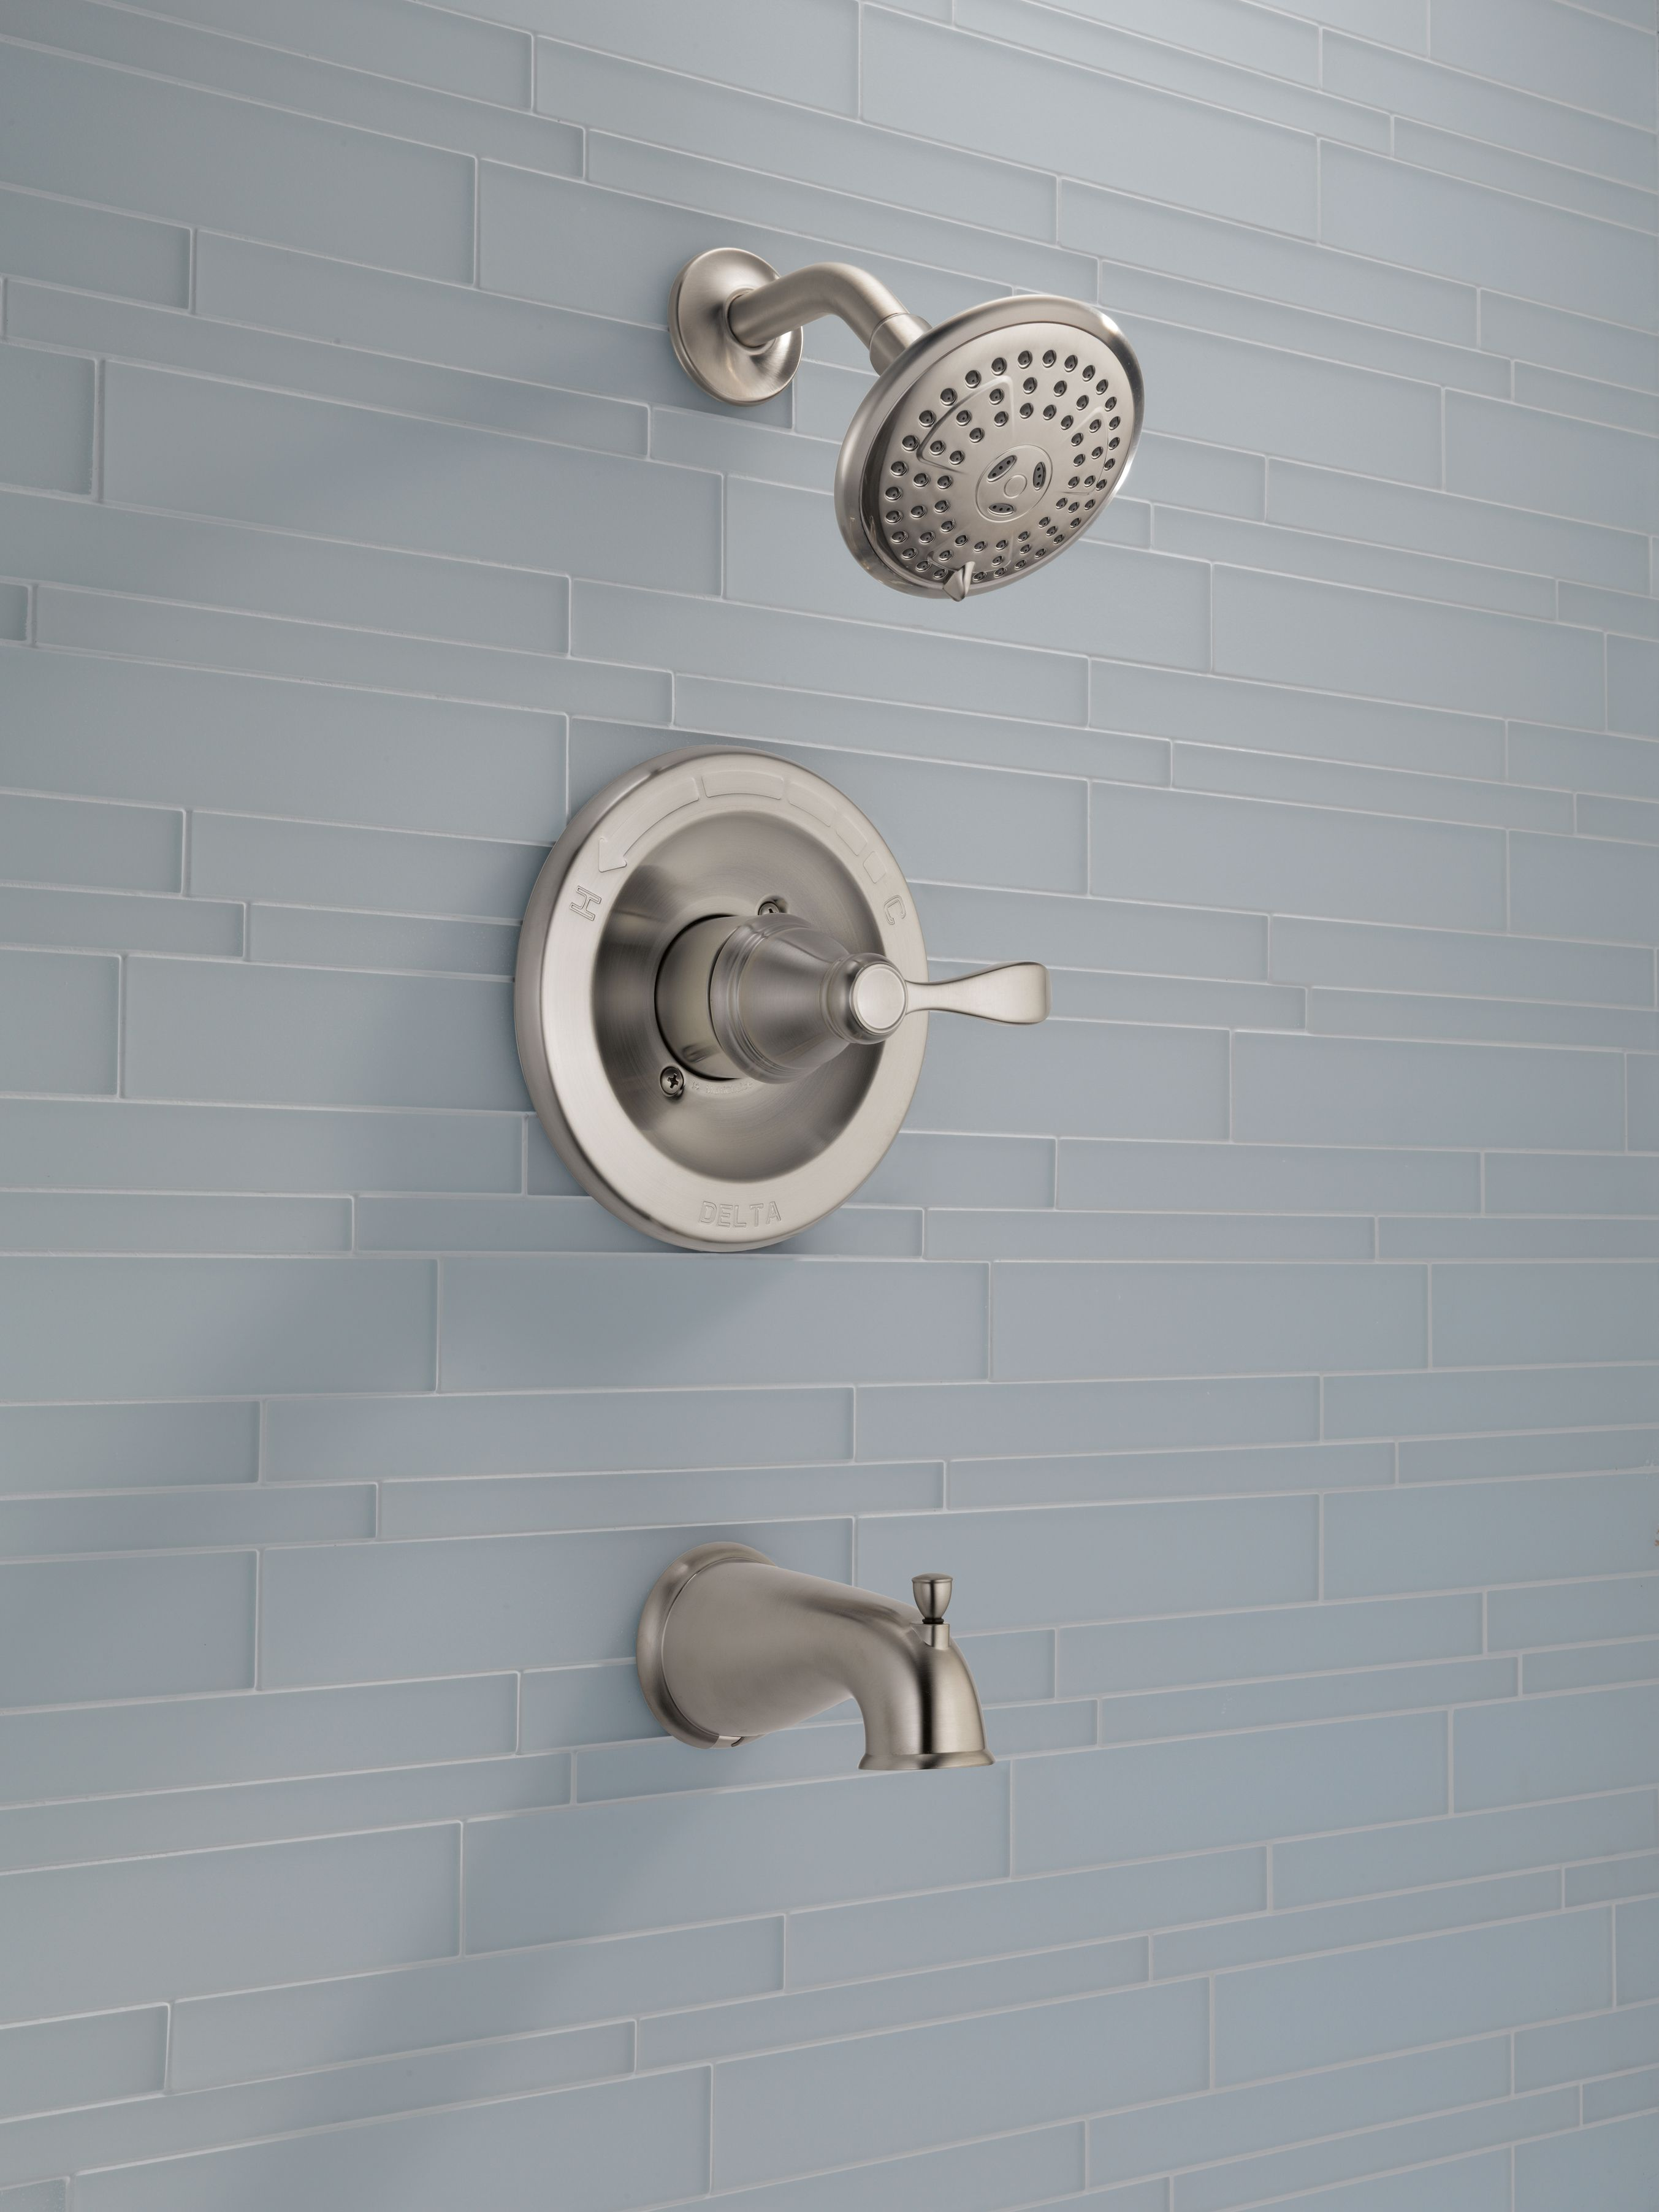 Pale Blue Bathroom Tile Pairs Well With A Brushed Nickel